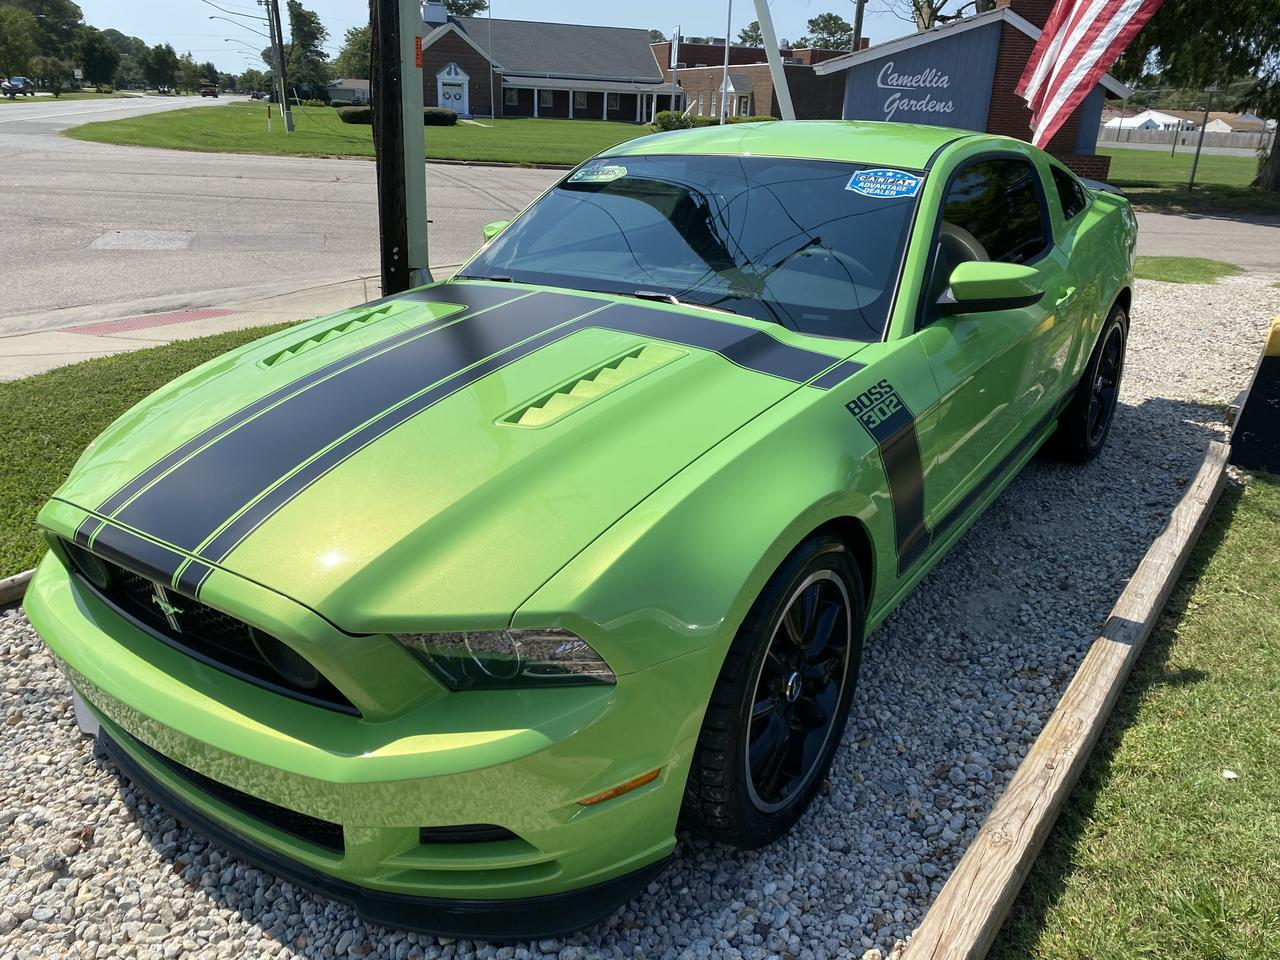 2013 FORD MUSTANG BOSS 302 COUPE, WARRANTY, MANUAL, 5.0L V8, RECARO SEATS, AUX/USB PORT, BLUETOOTH, LOW MILES! Norfolk VA